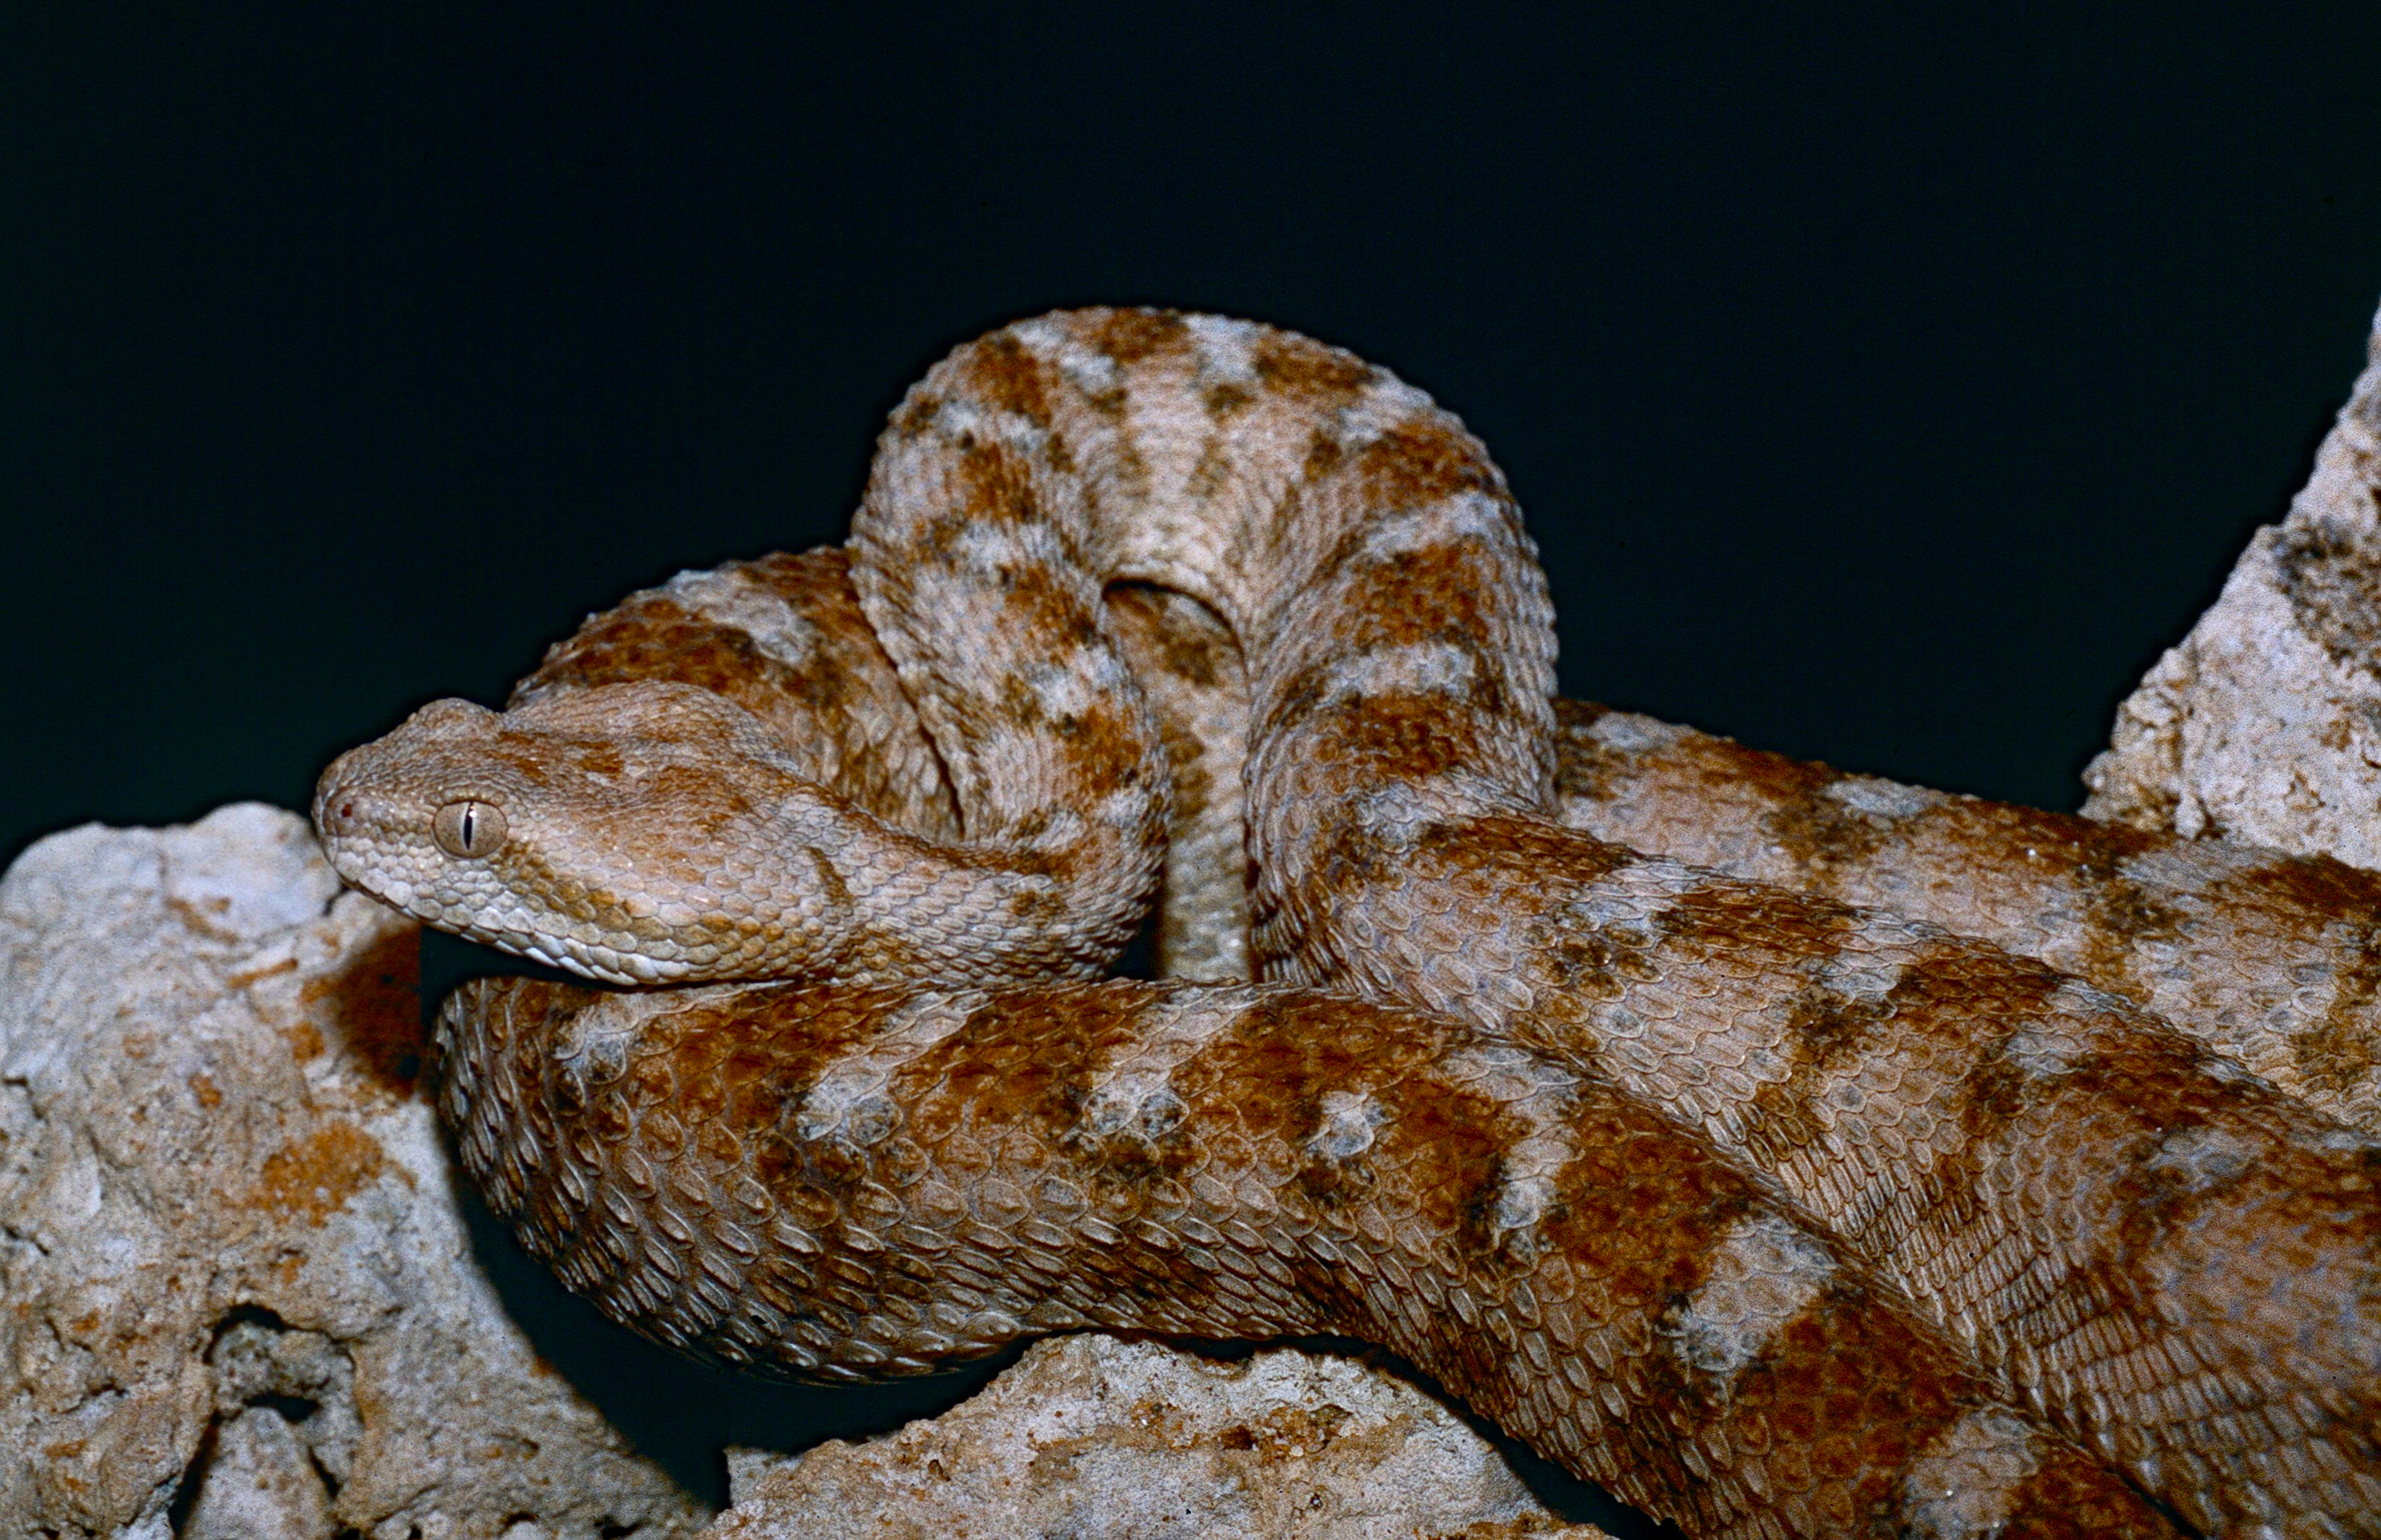 Image of Egyptian Saw-scaled Viper